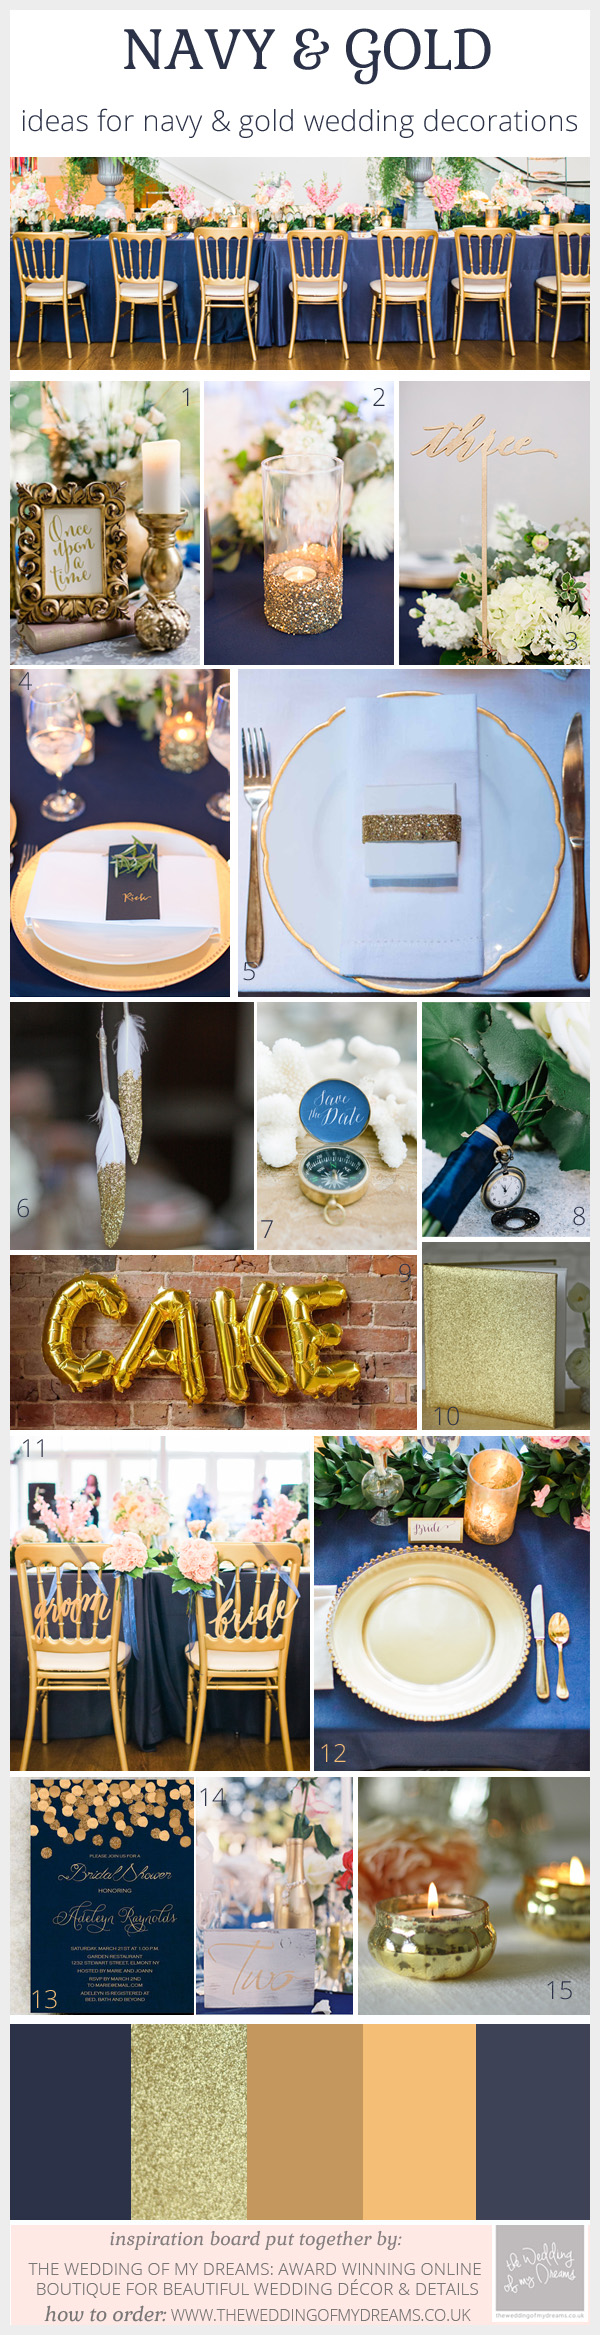 Gold and Navy Wedding Decorations and Ideas @theweddingofmydreams